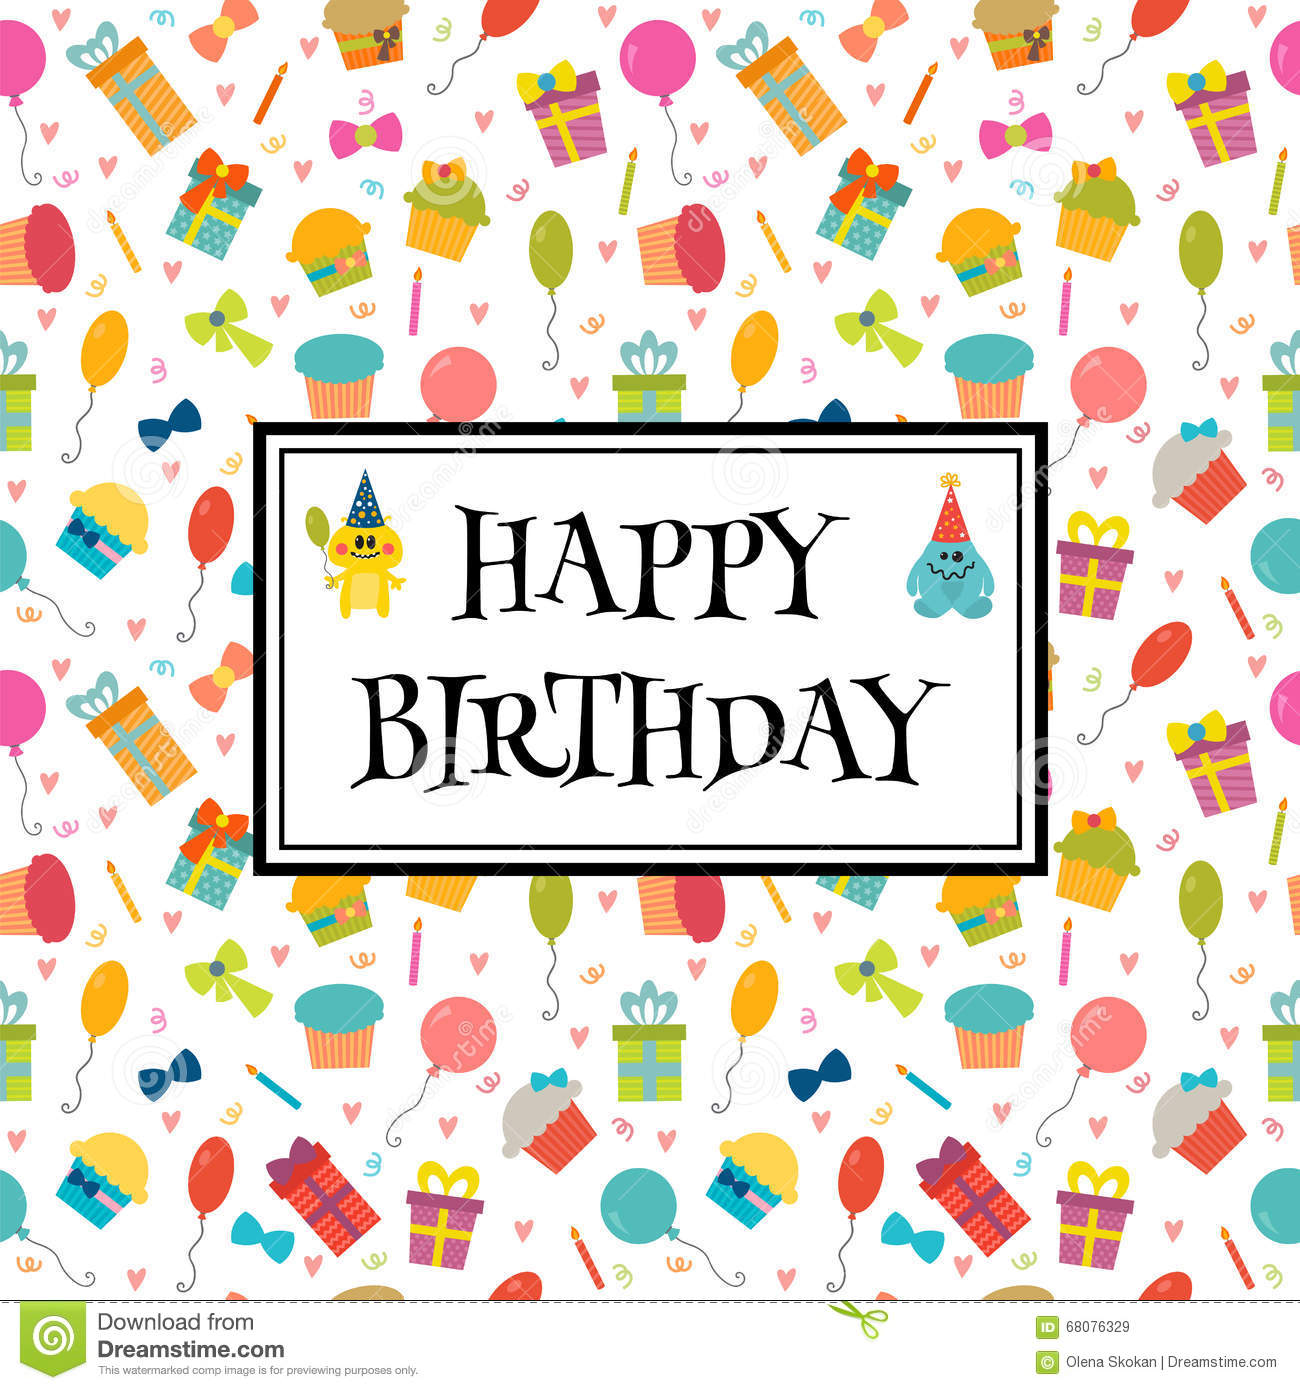 Happy Birthday Greeting Card With Funny Monsters Cute Birthday – Cute Birthday Greeting Cards